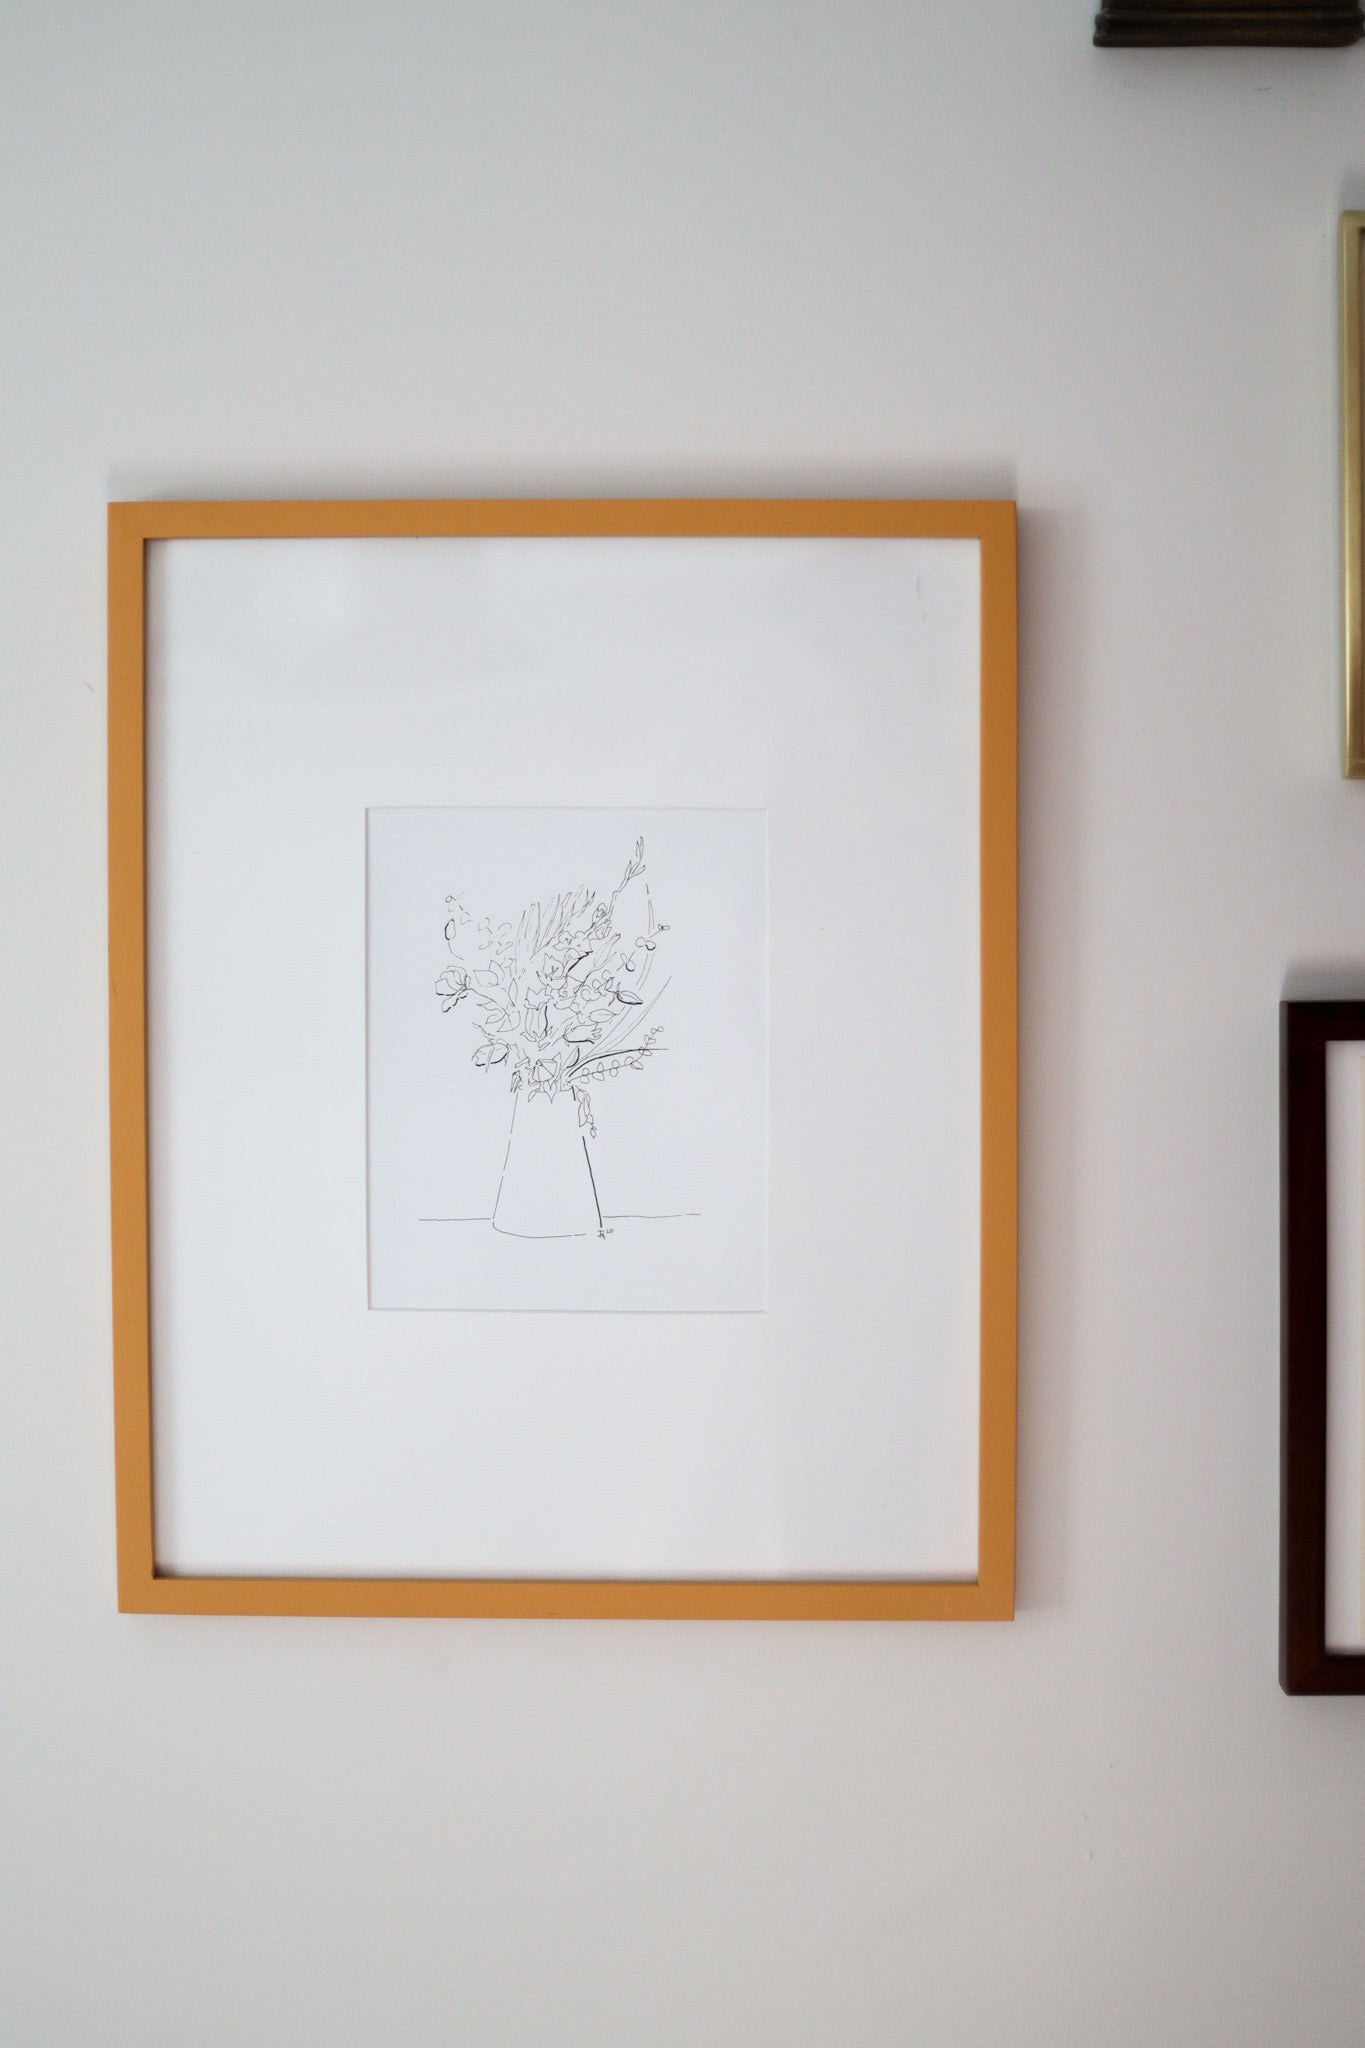 Jonathan Kent Adams art in an orange frame